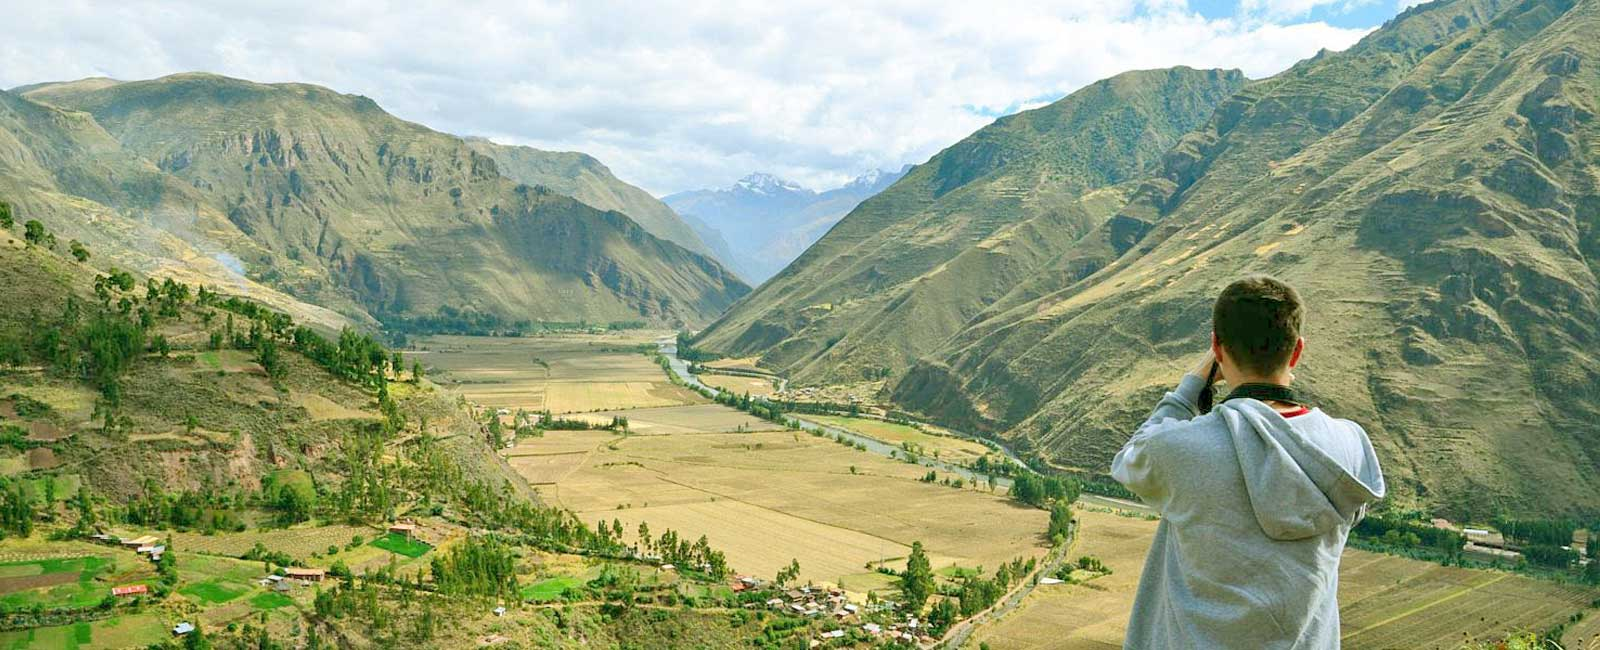 Sacred Valley Tour of the Incas